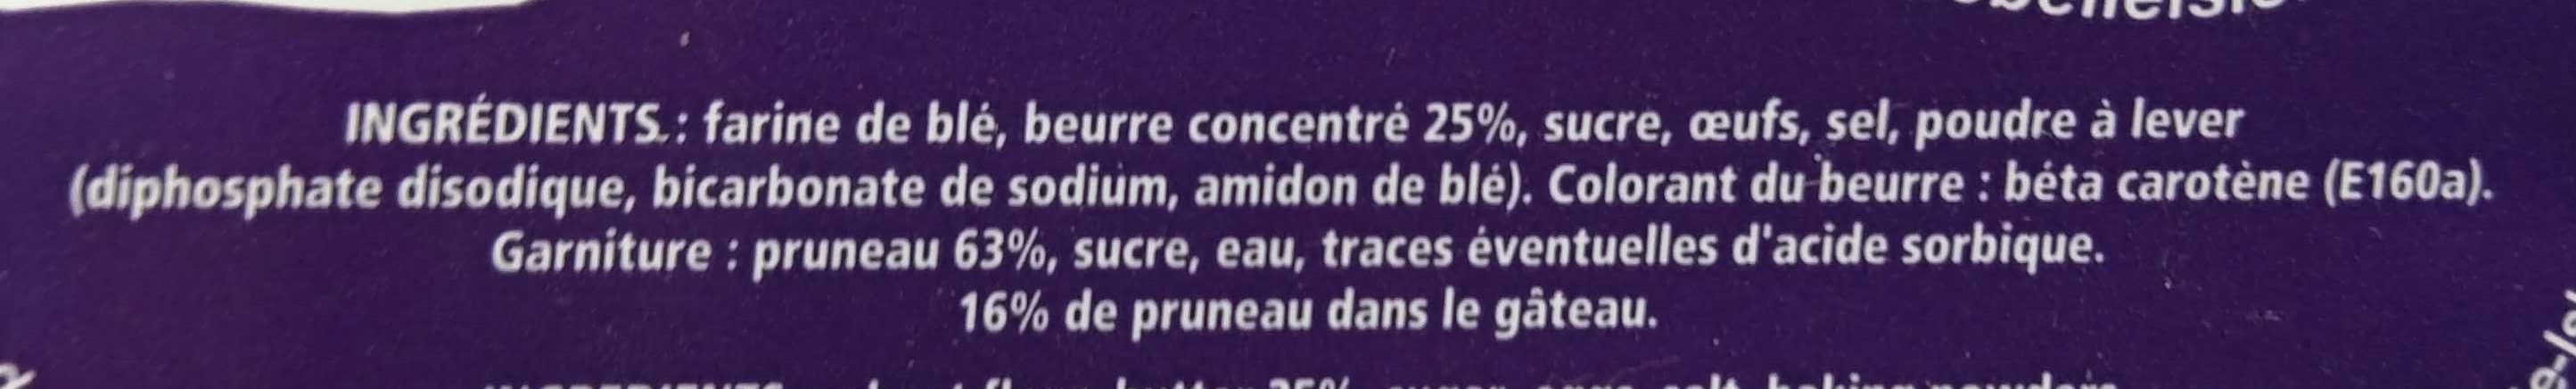 Le Breton de Belle Isle Pruneaux - Ingredients - fr